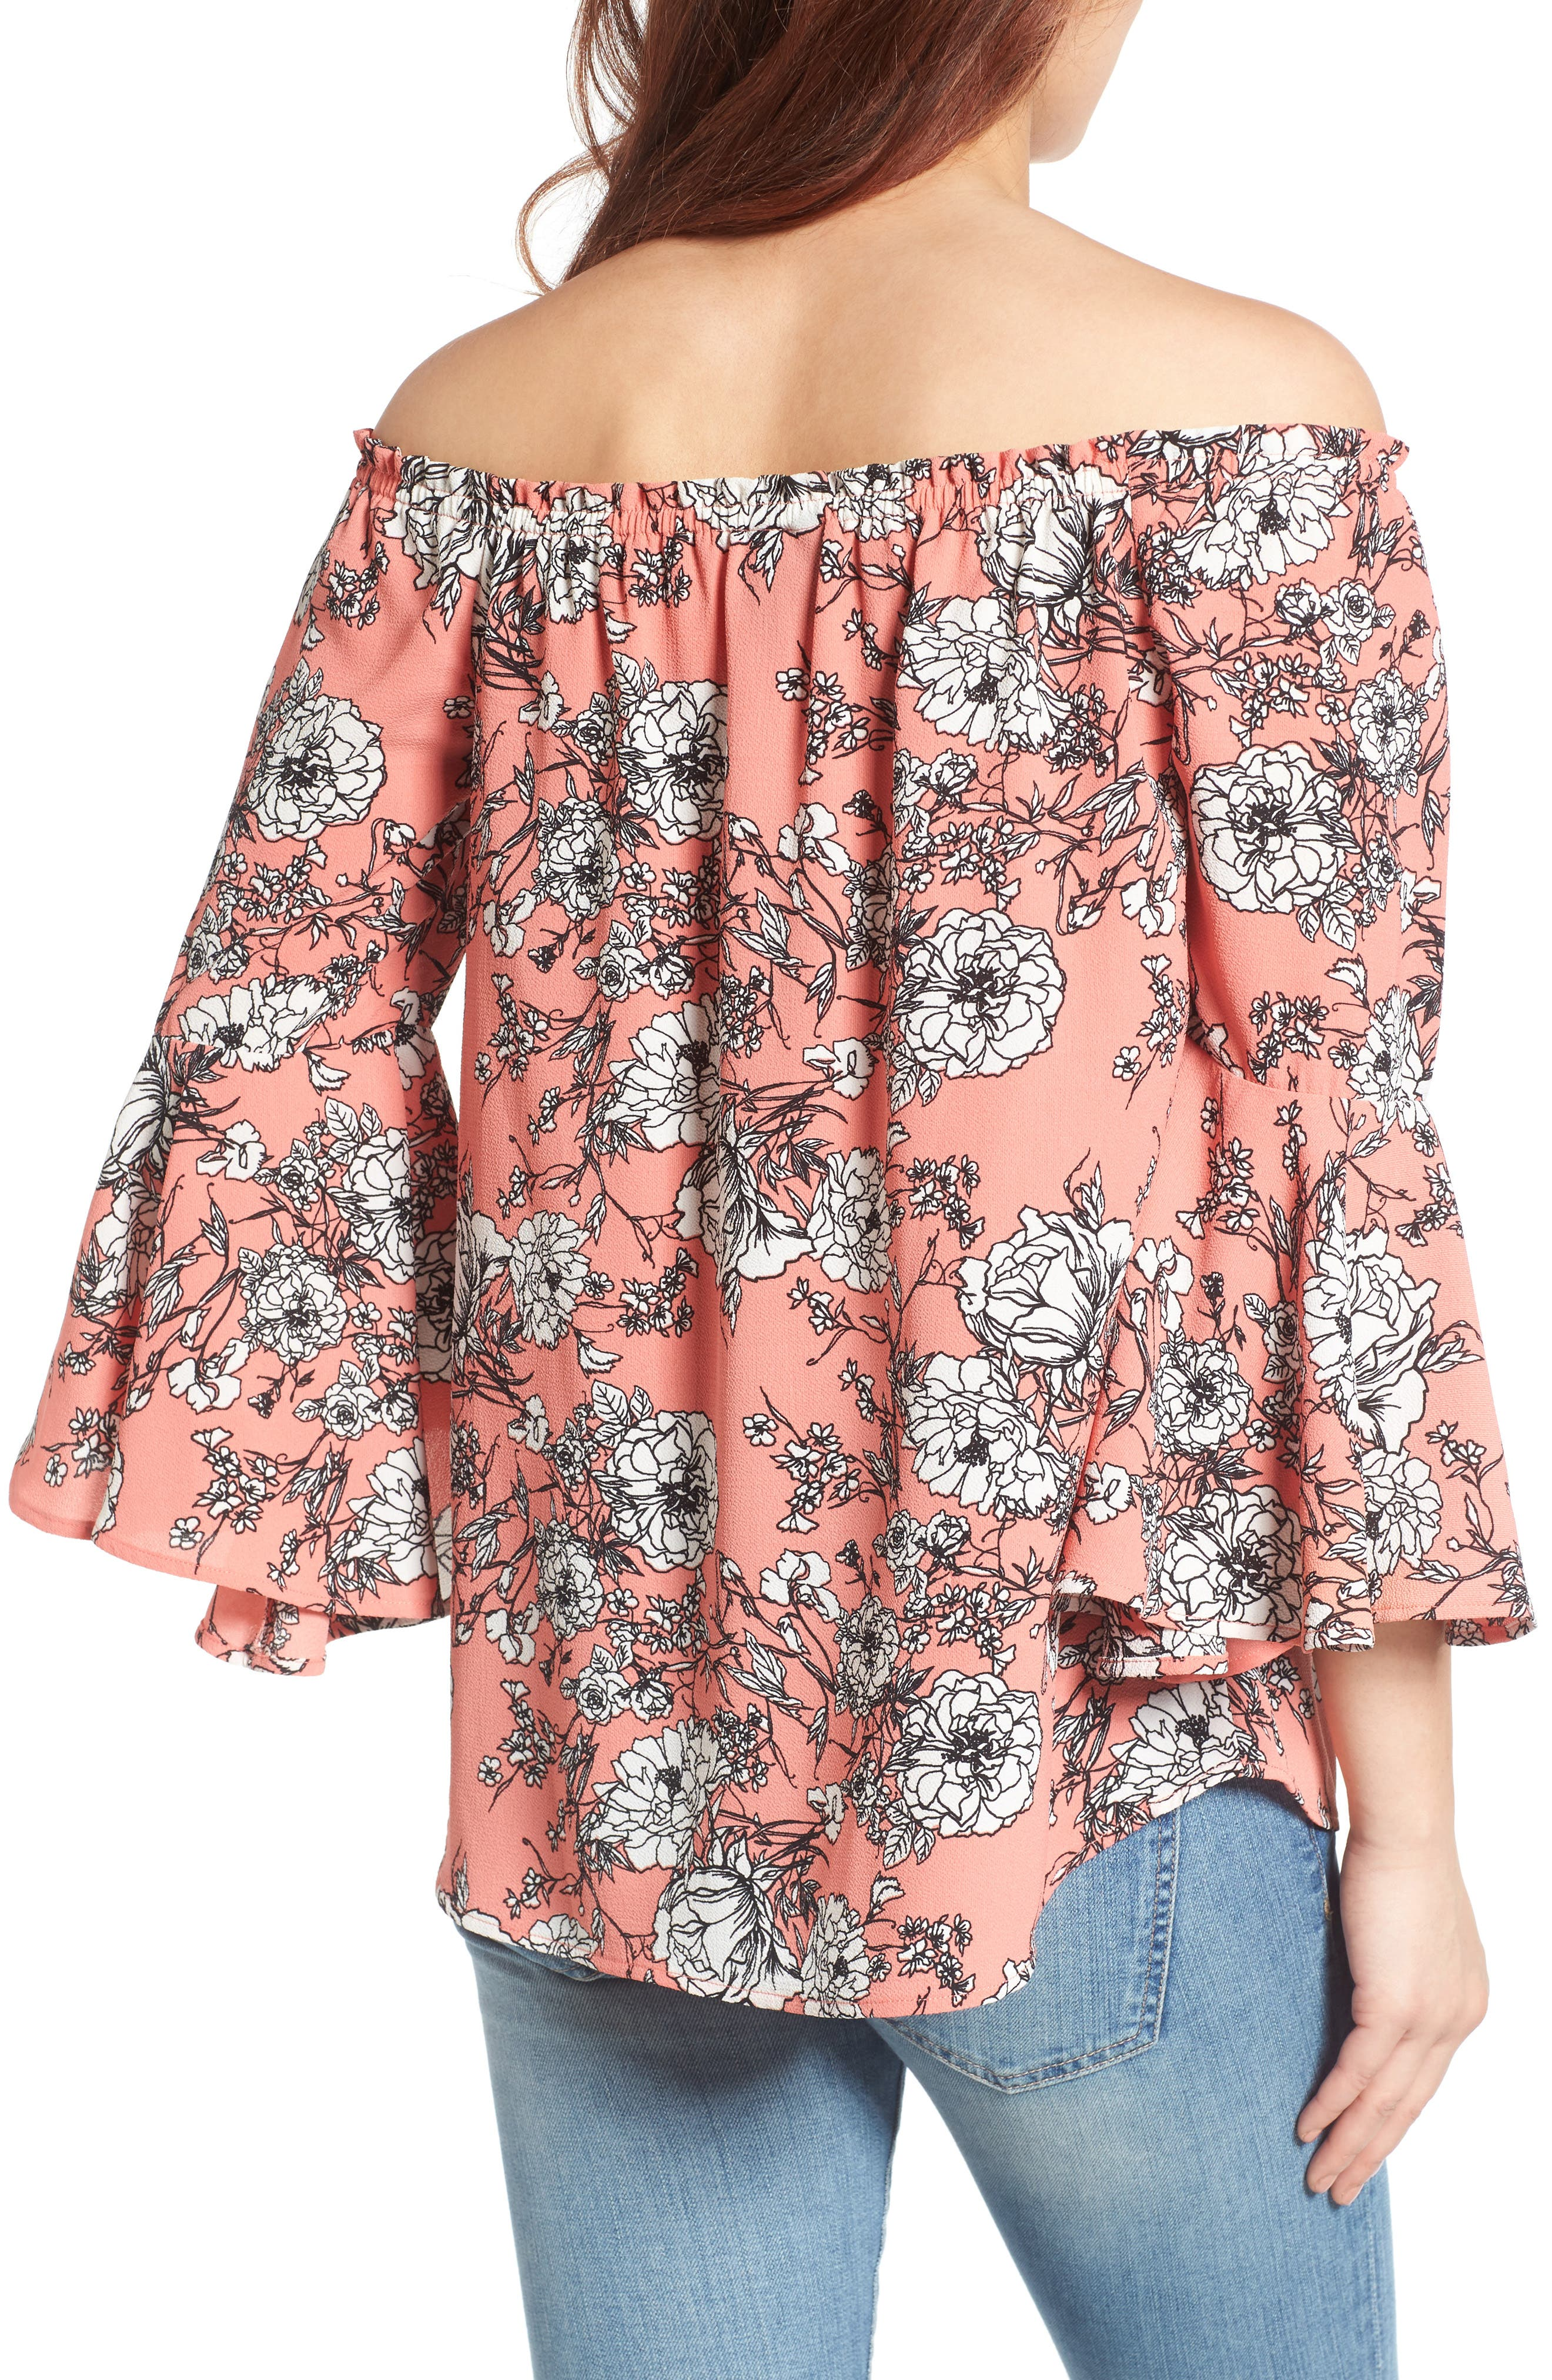 Bell Sleeve Off the Shoulder Blouse,                             Alternate thumbnail 6, color,